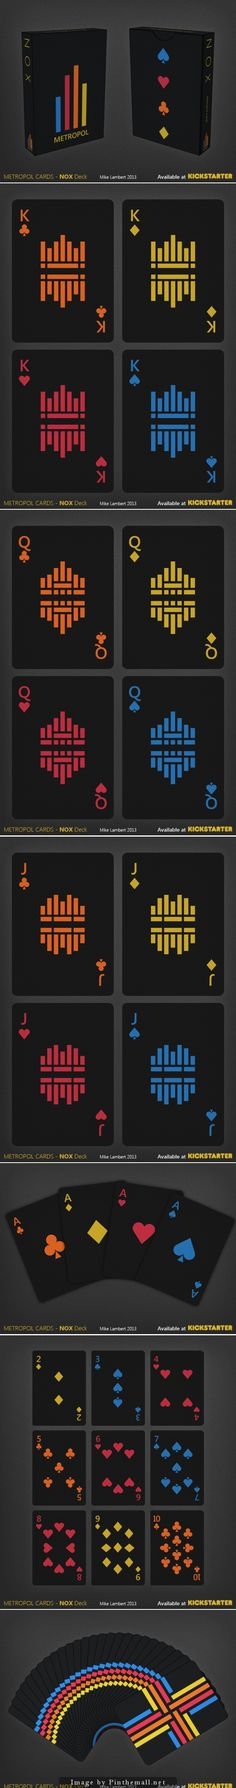 Metropol NOX Playing Cards